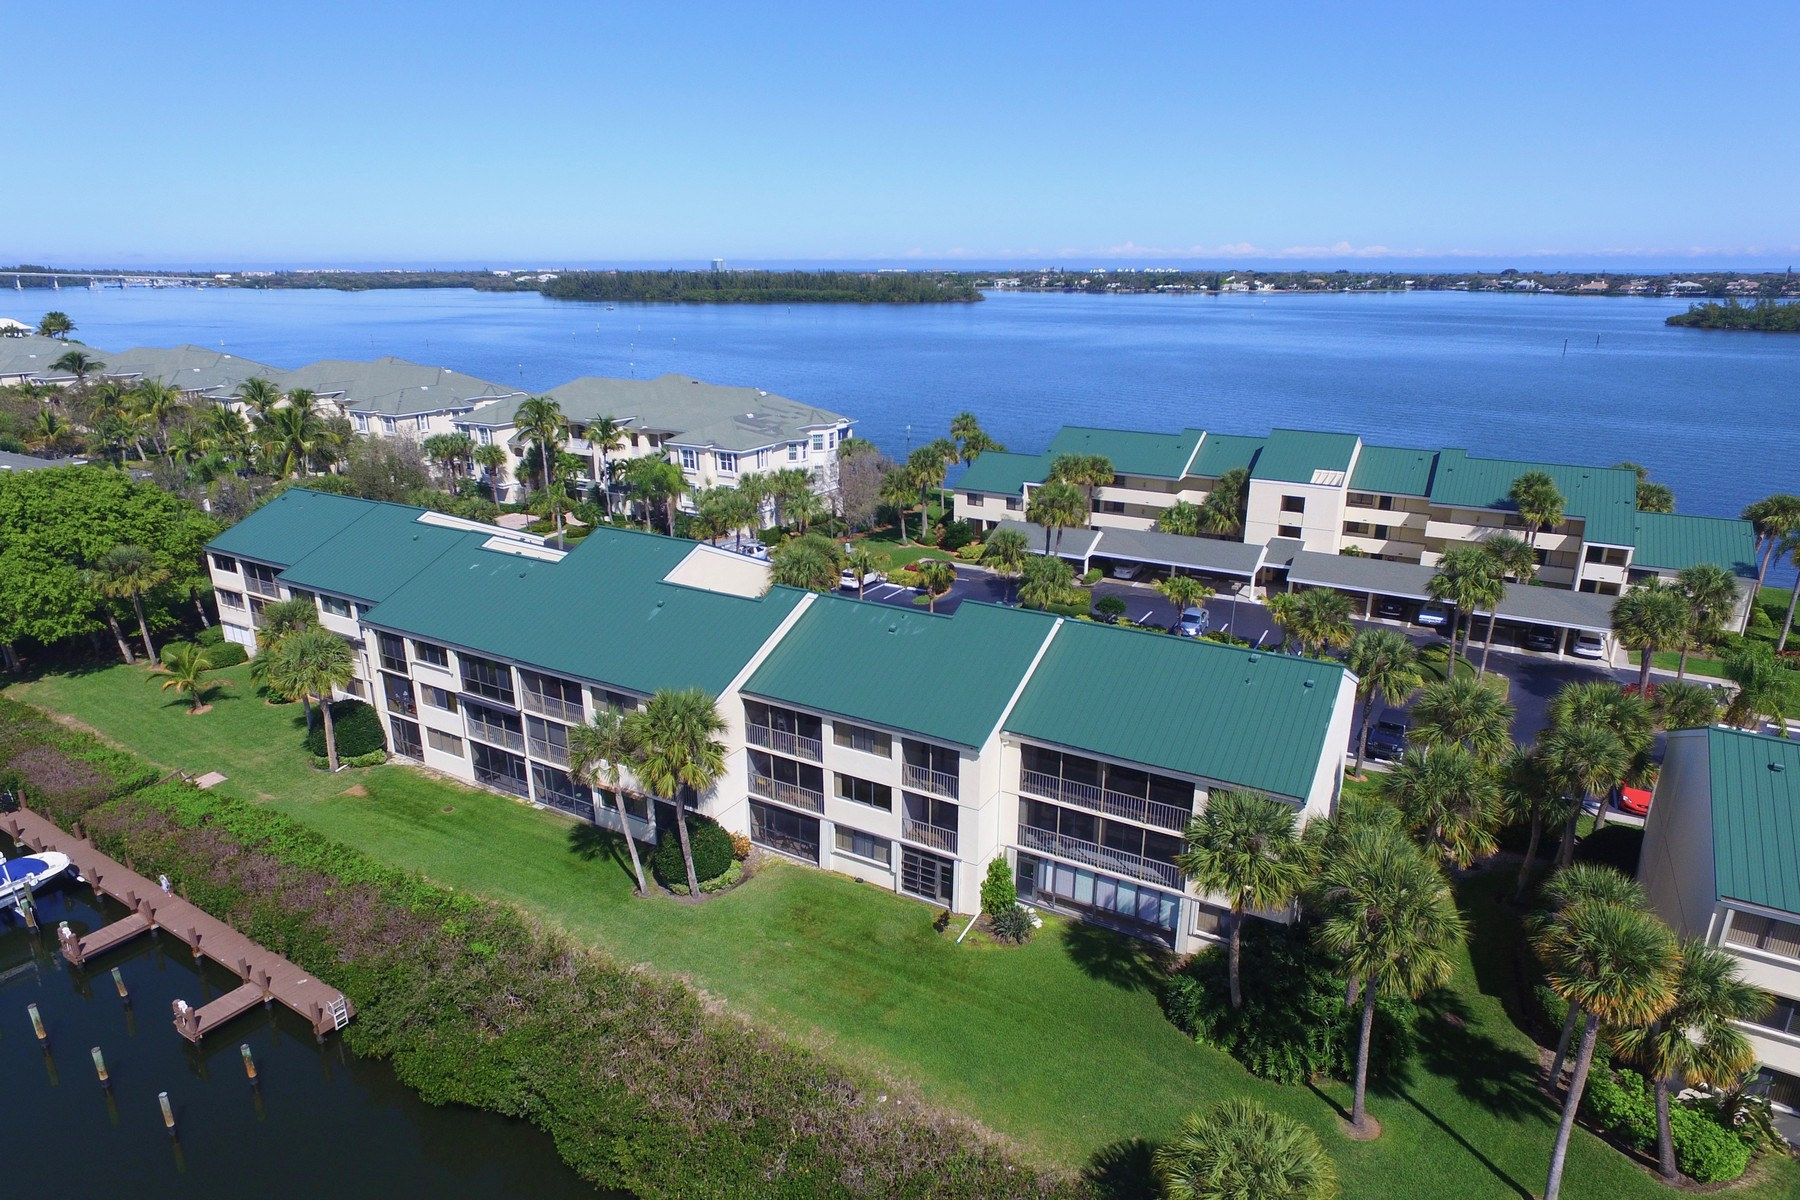 Condominium for Sale at Largest End Unit Condo - Watch the Boats and Manatees in the Canal Below! 1845 Tarpon Ln #G201 Vero Beach, Florida 32960 United States